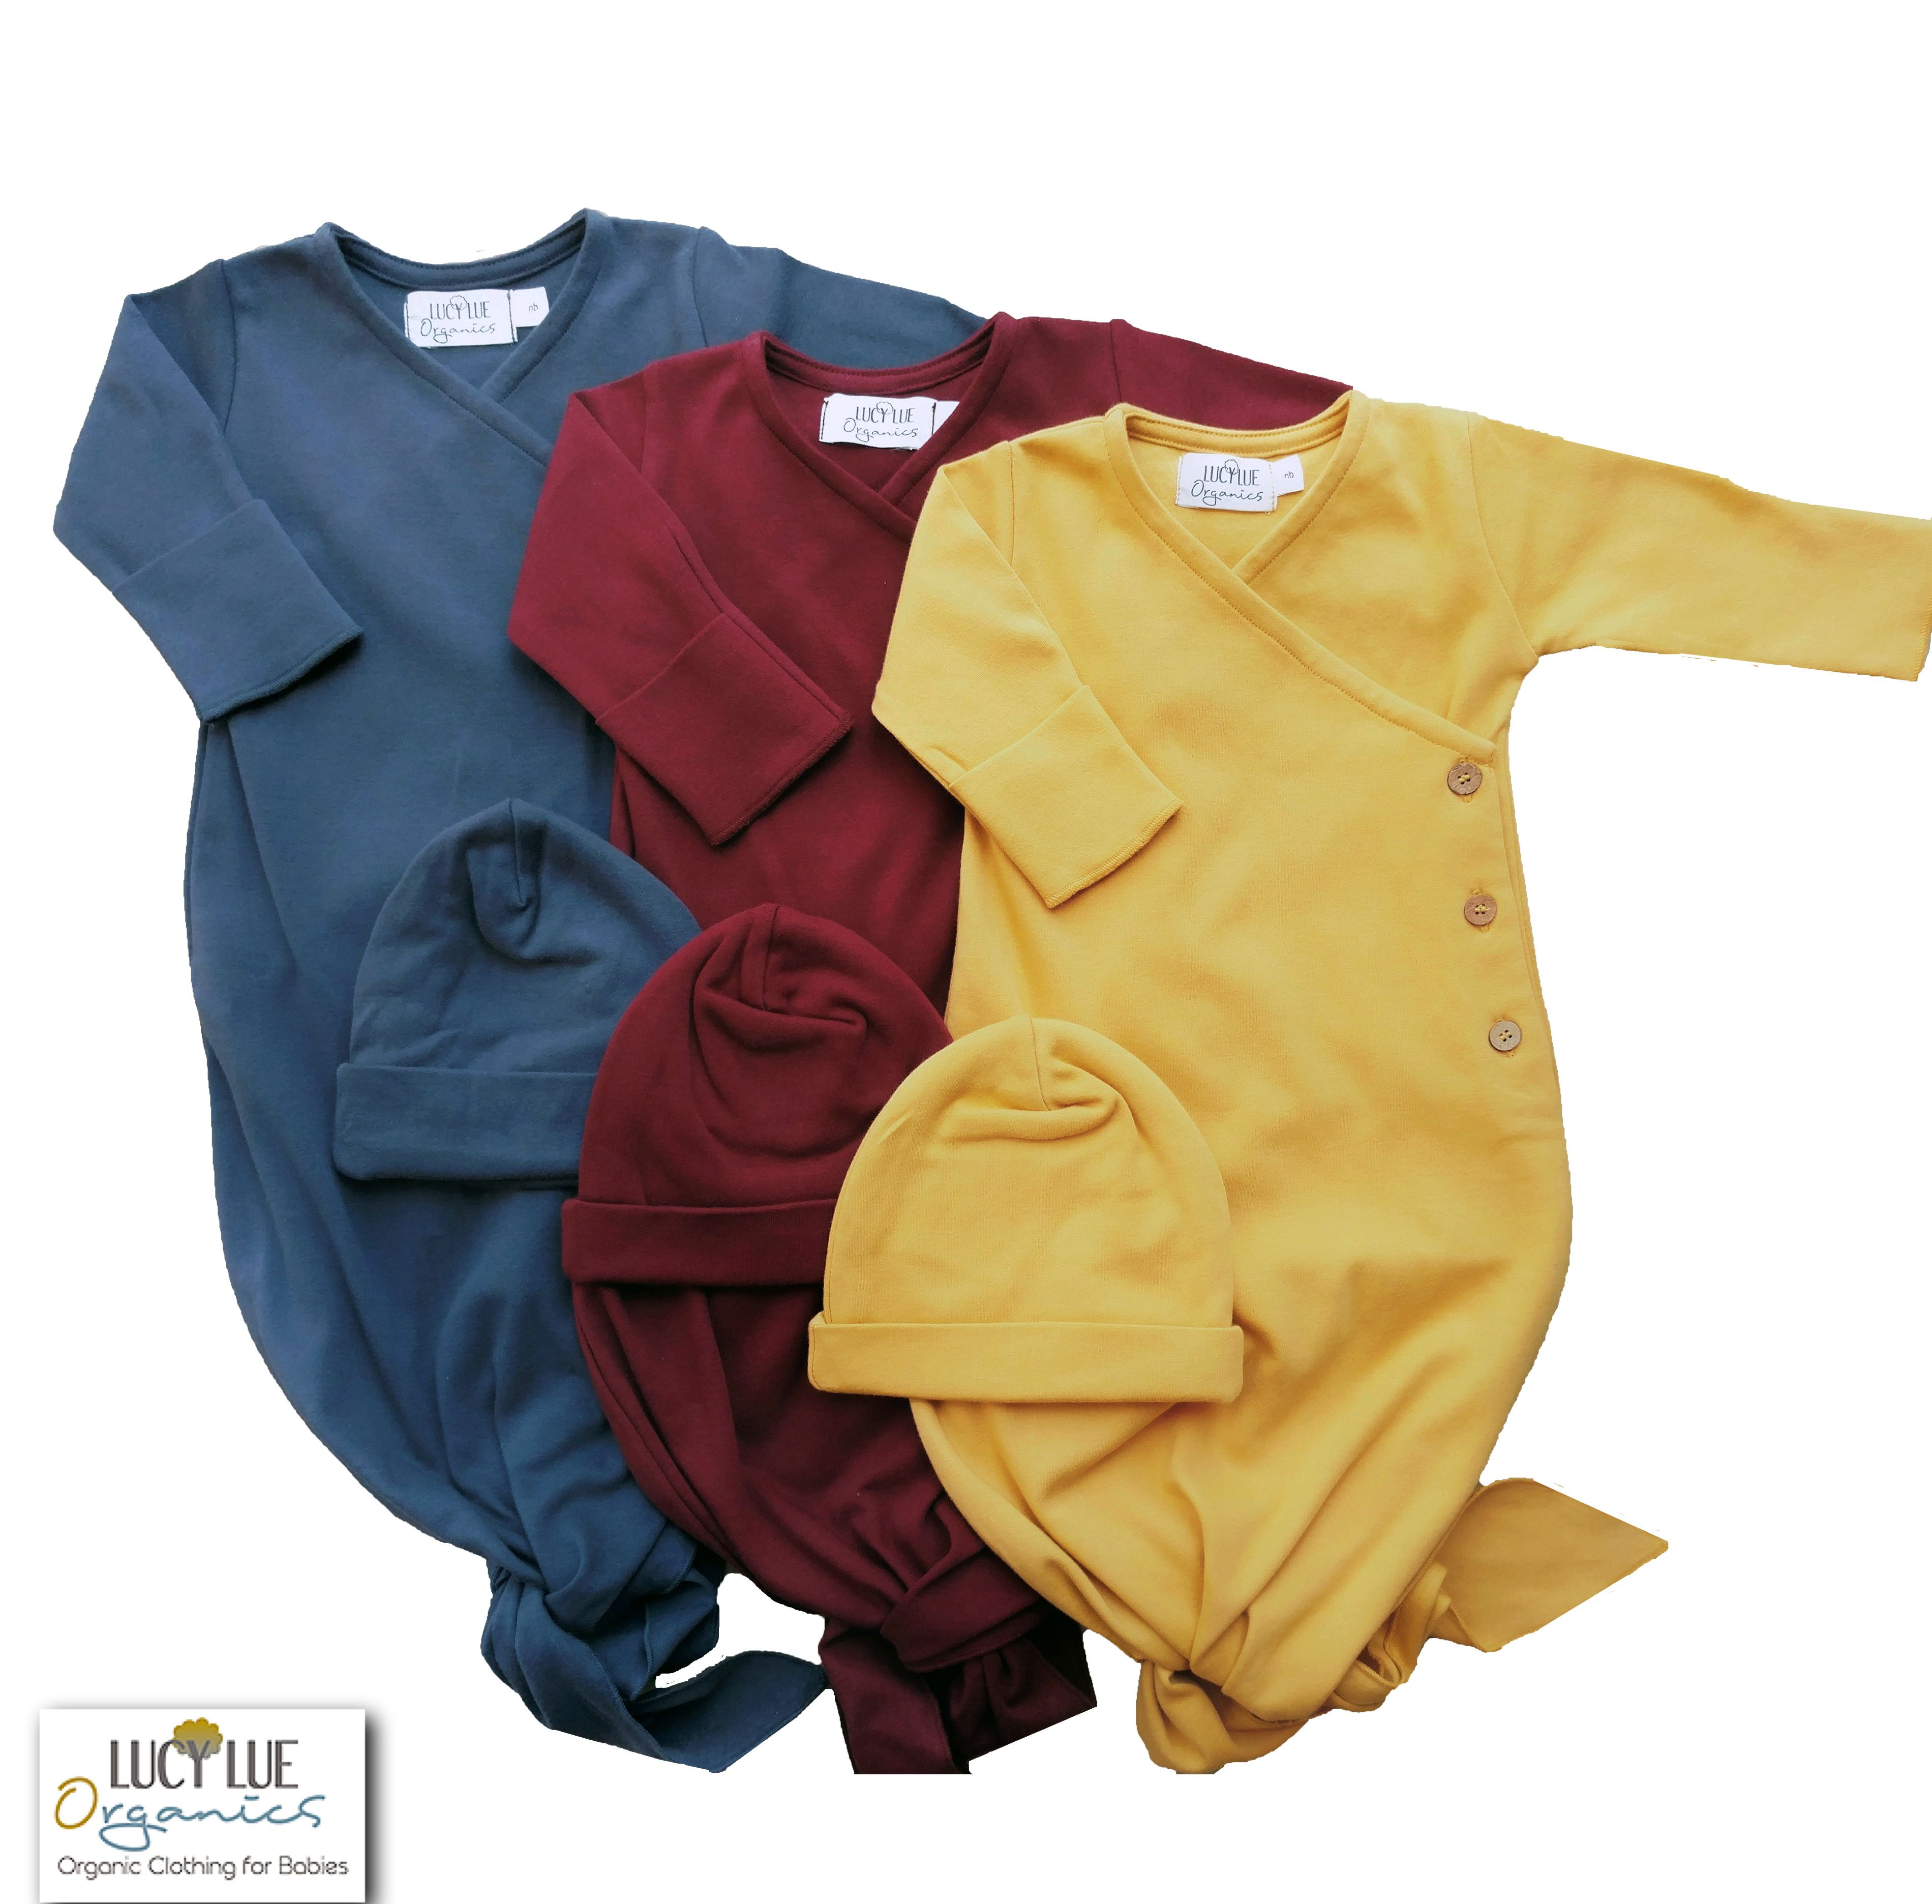 Organic cotton Knotted Kimono baby gown by Lucy Lue Organics. New